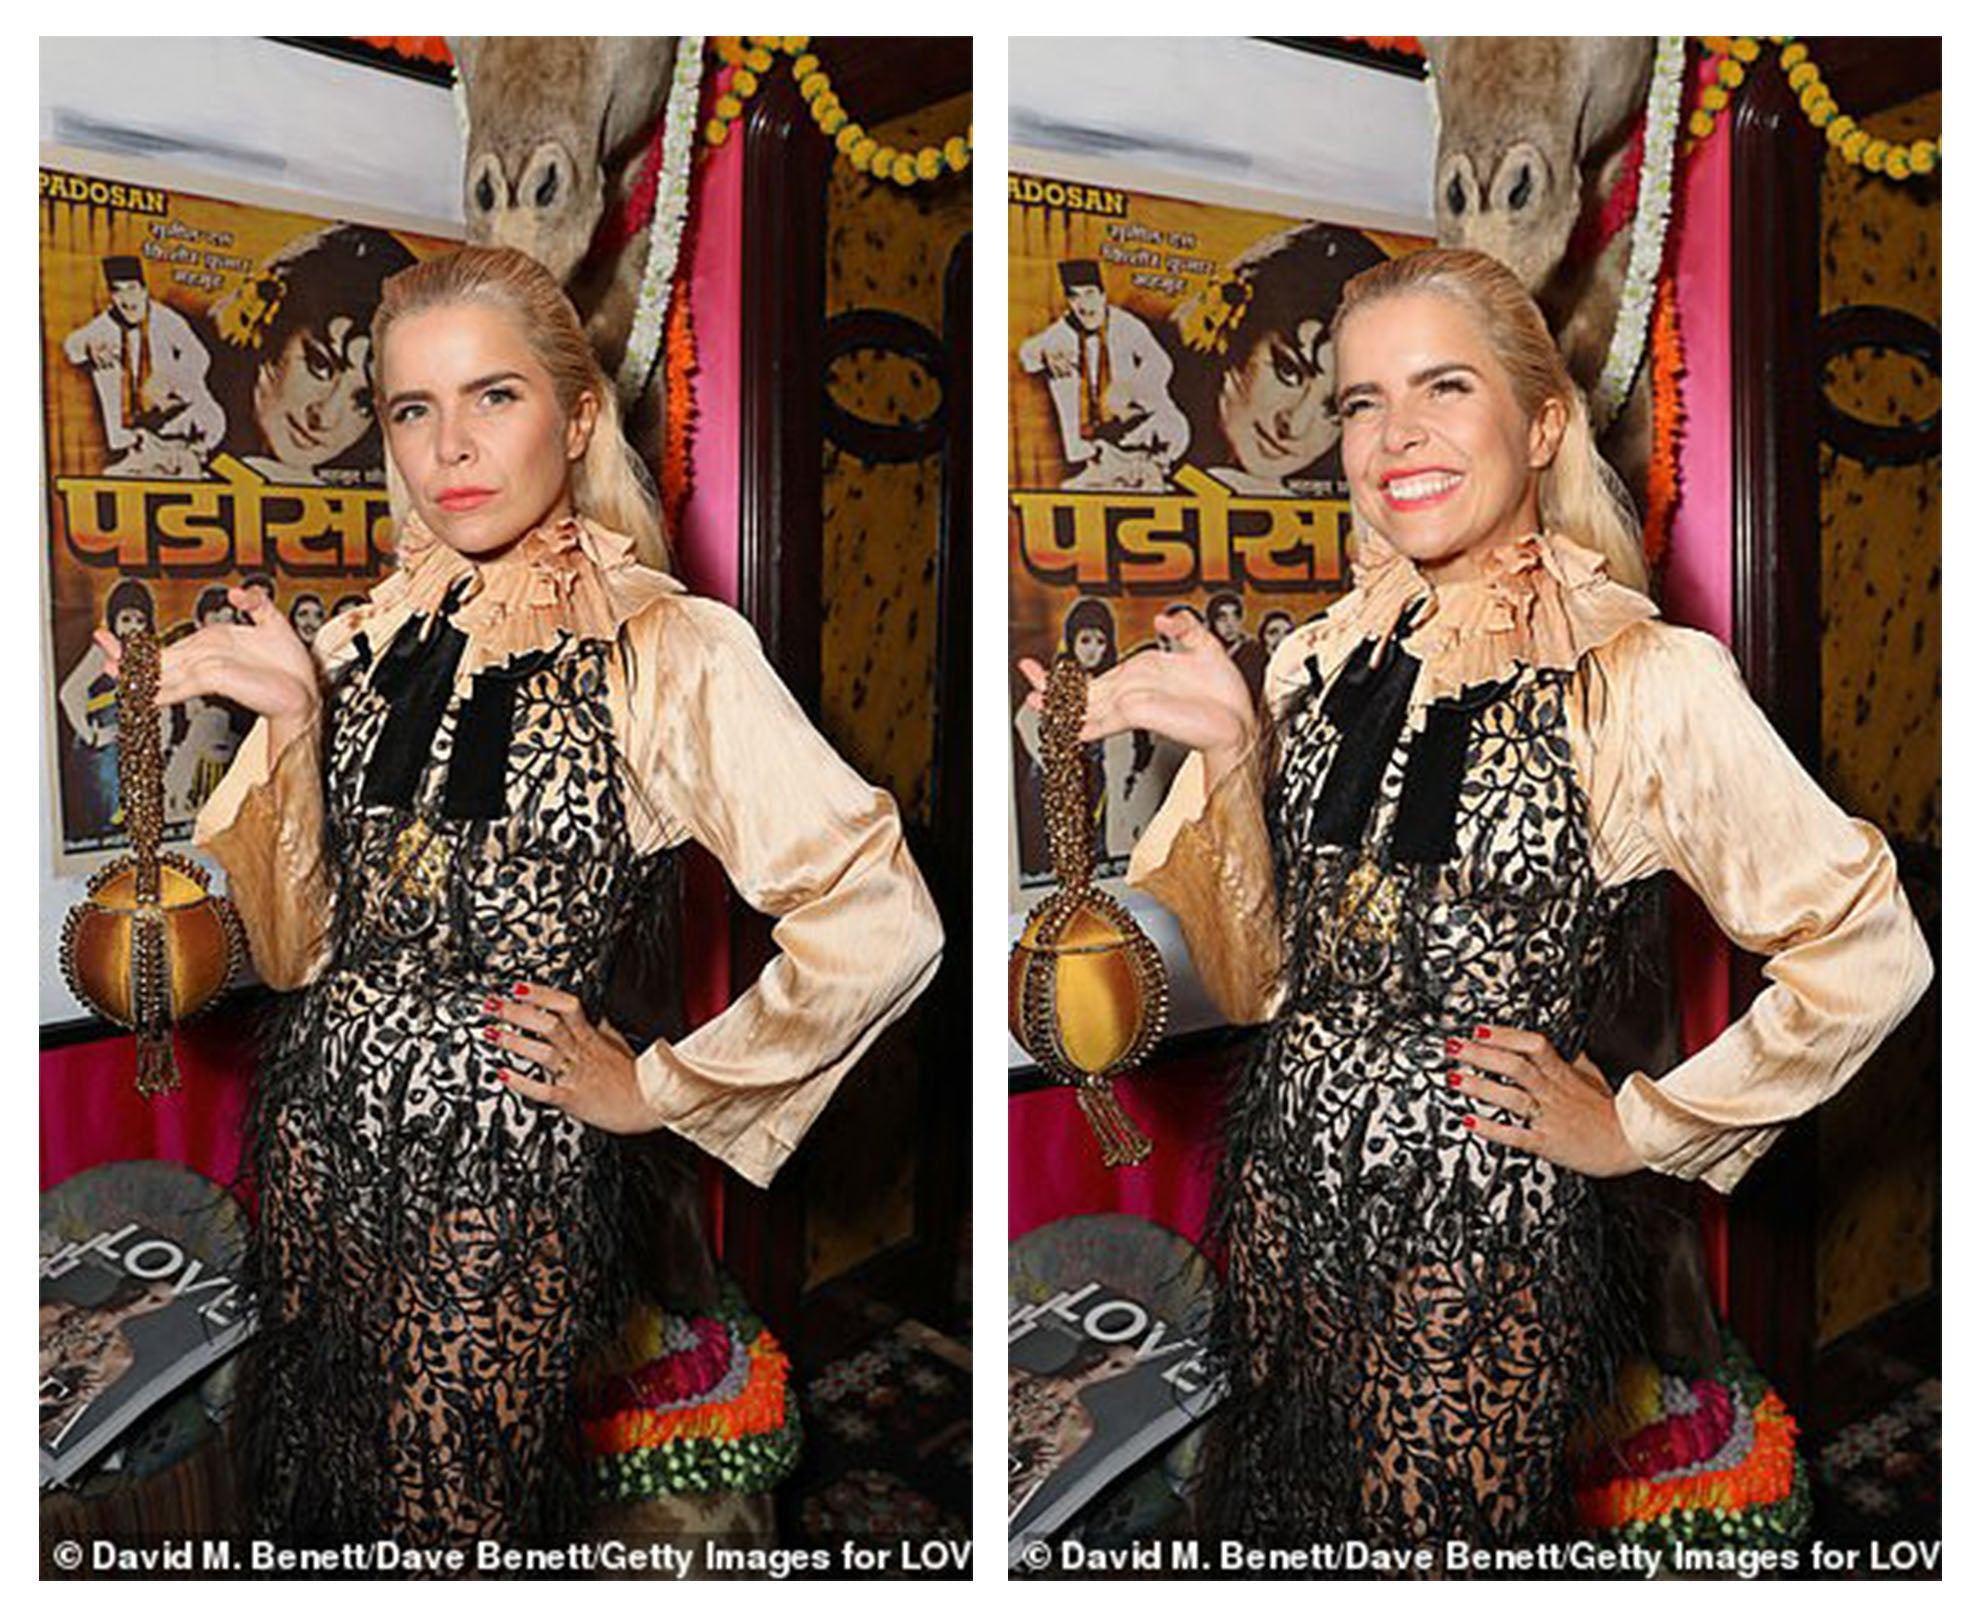 VOGUE EVENING STANDARD DAILY MAIL OK Award-winning singer-Songwriter and one the most successful British Female artists of the last decade; Paloma Faith wears the Mae Cassidy, Butterscotch, 'Babi Bracelet' to the LOVE Magazine's star studded, London Fashion Week Bash.  Zeynep Kartal dress, Found And Vision shirt and Necklace and Christian Louboutin Shoes. Styled by Rebekka Fellah, with Make-Up by Lan Nguyen-Grealis and Photography by Dave Benett. Gold yellow clutch bag GETTY IMAGES